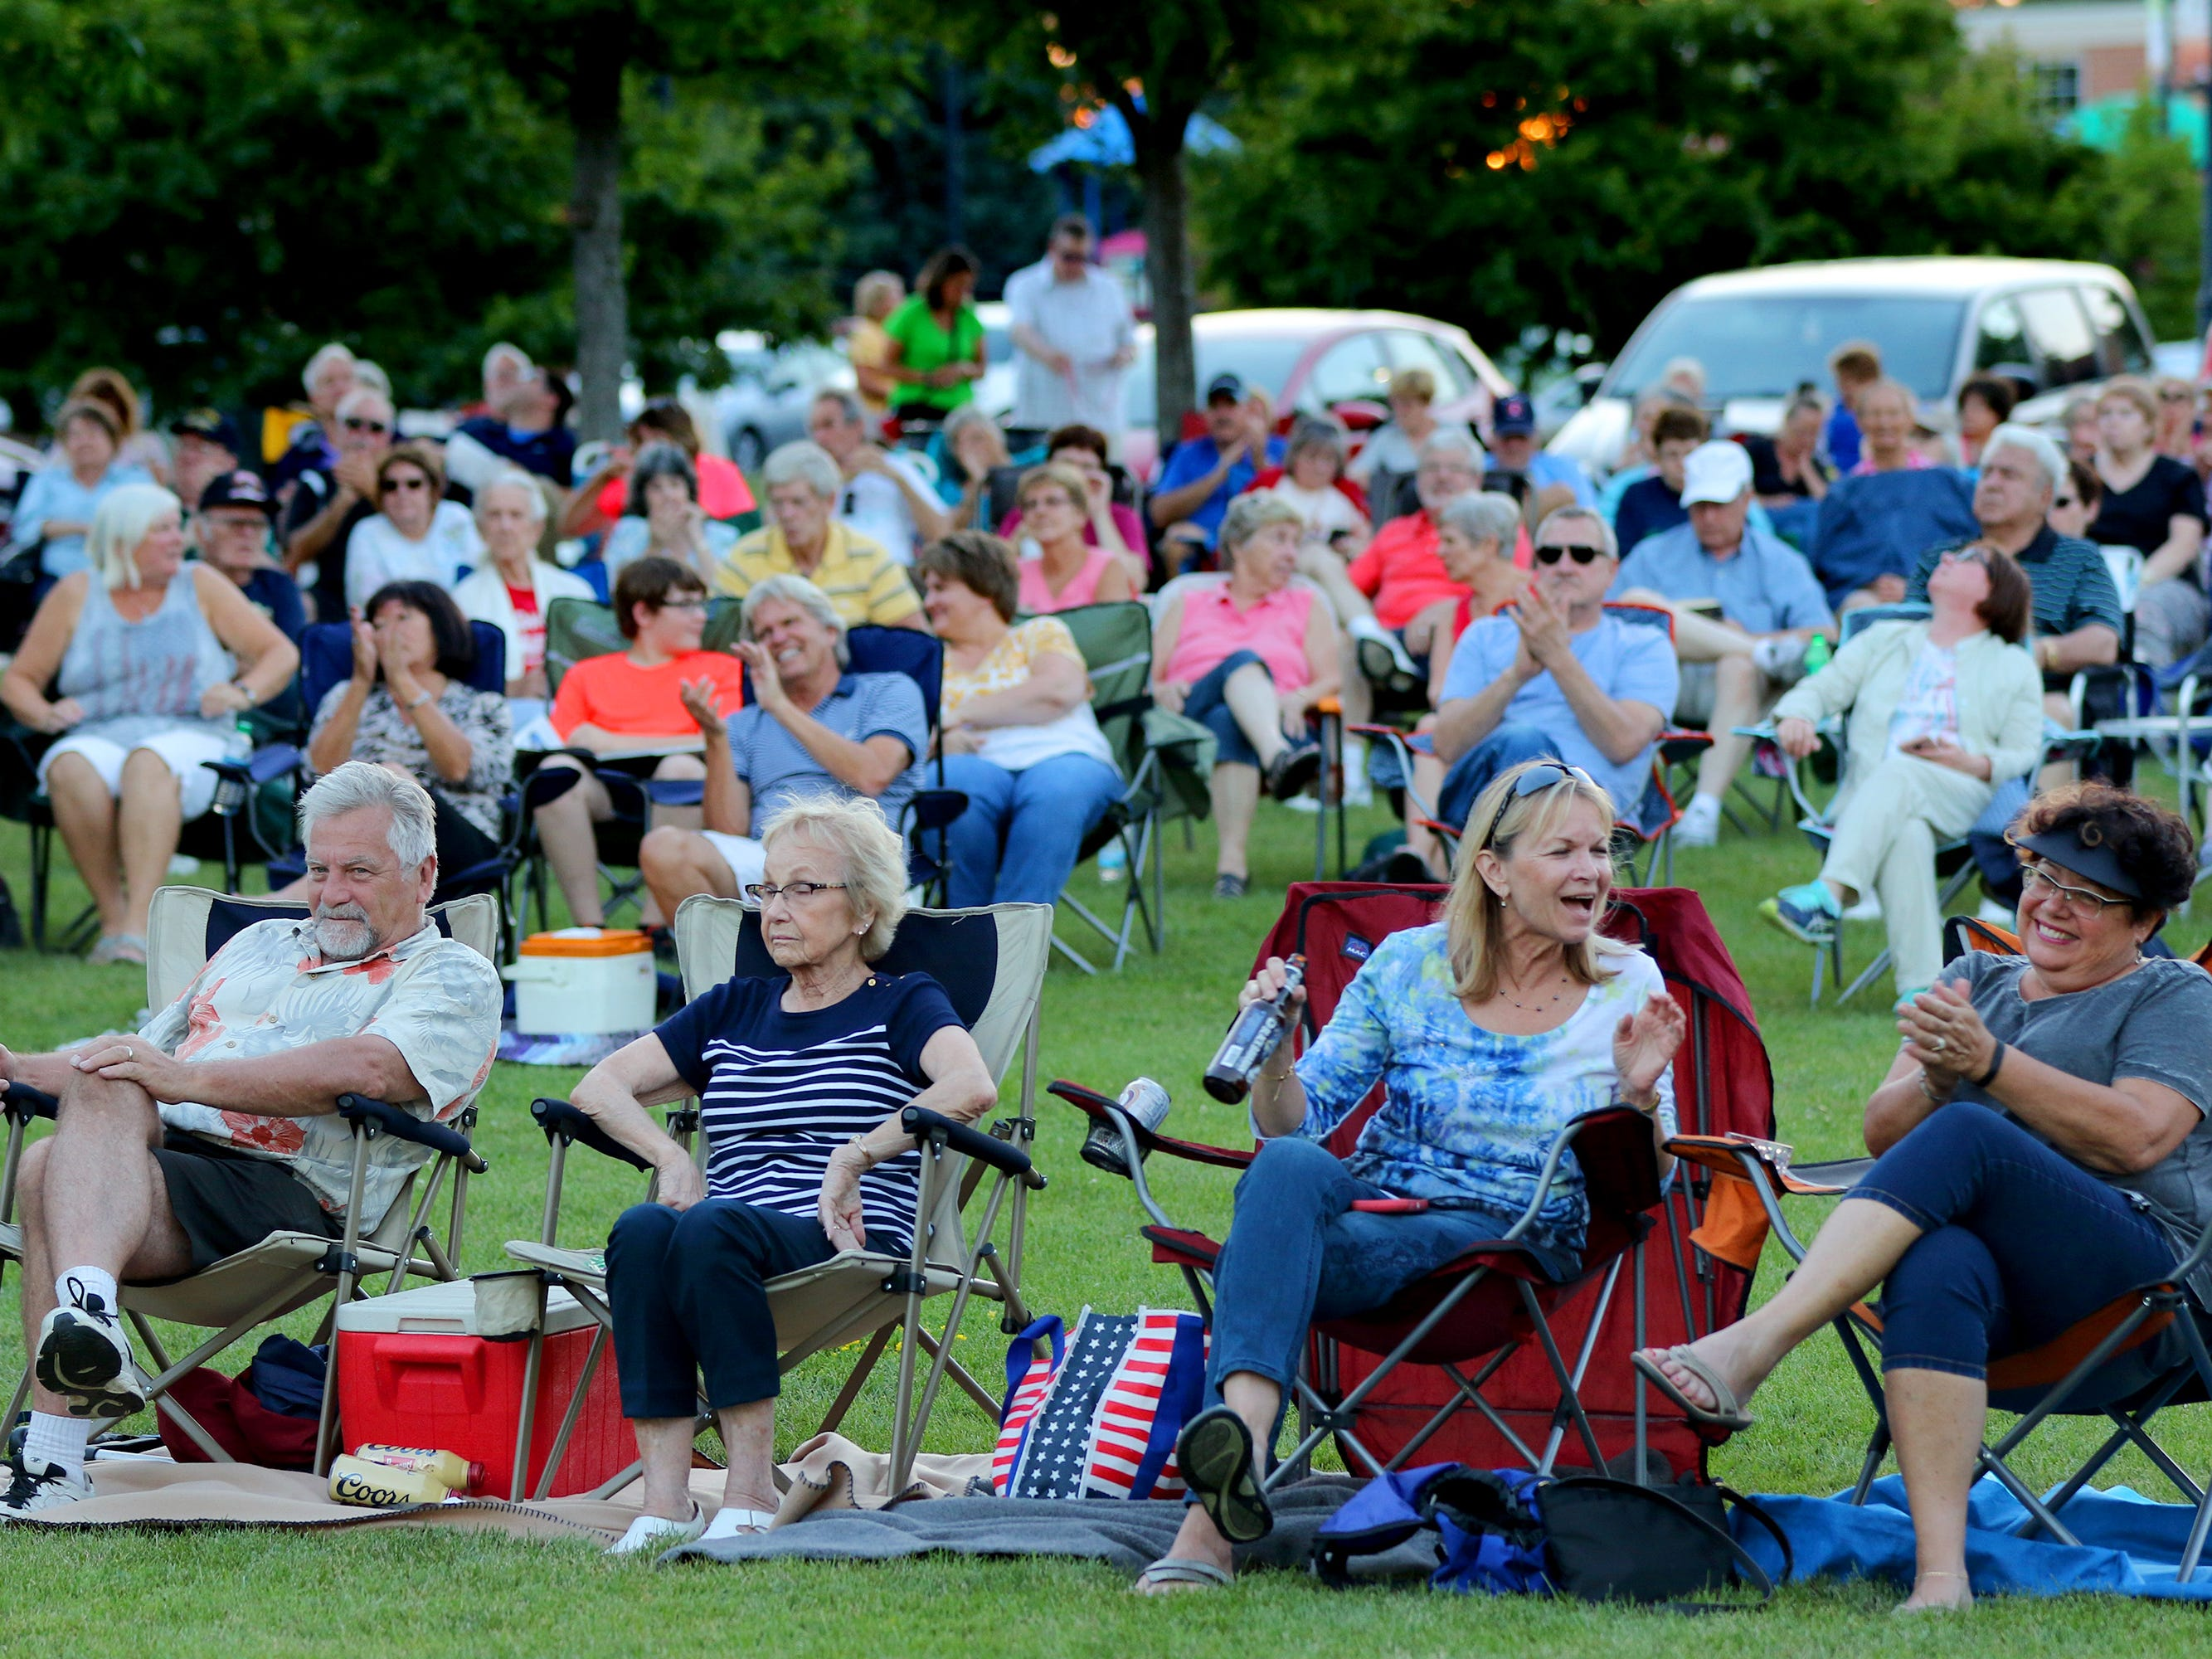 The crowd enjoys Streetlife with Warren Wiegratz perform at a New Berlin Concerts at City Center on Aug. 8.